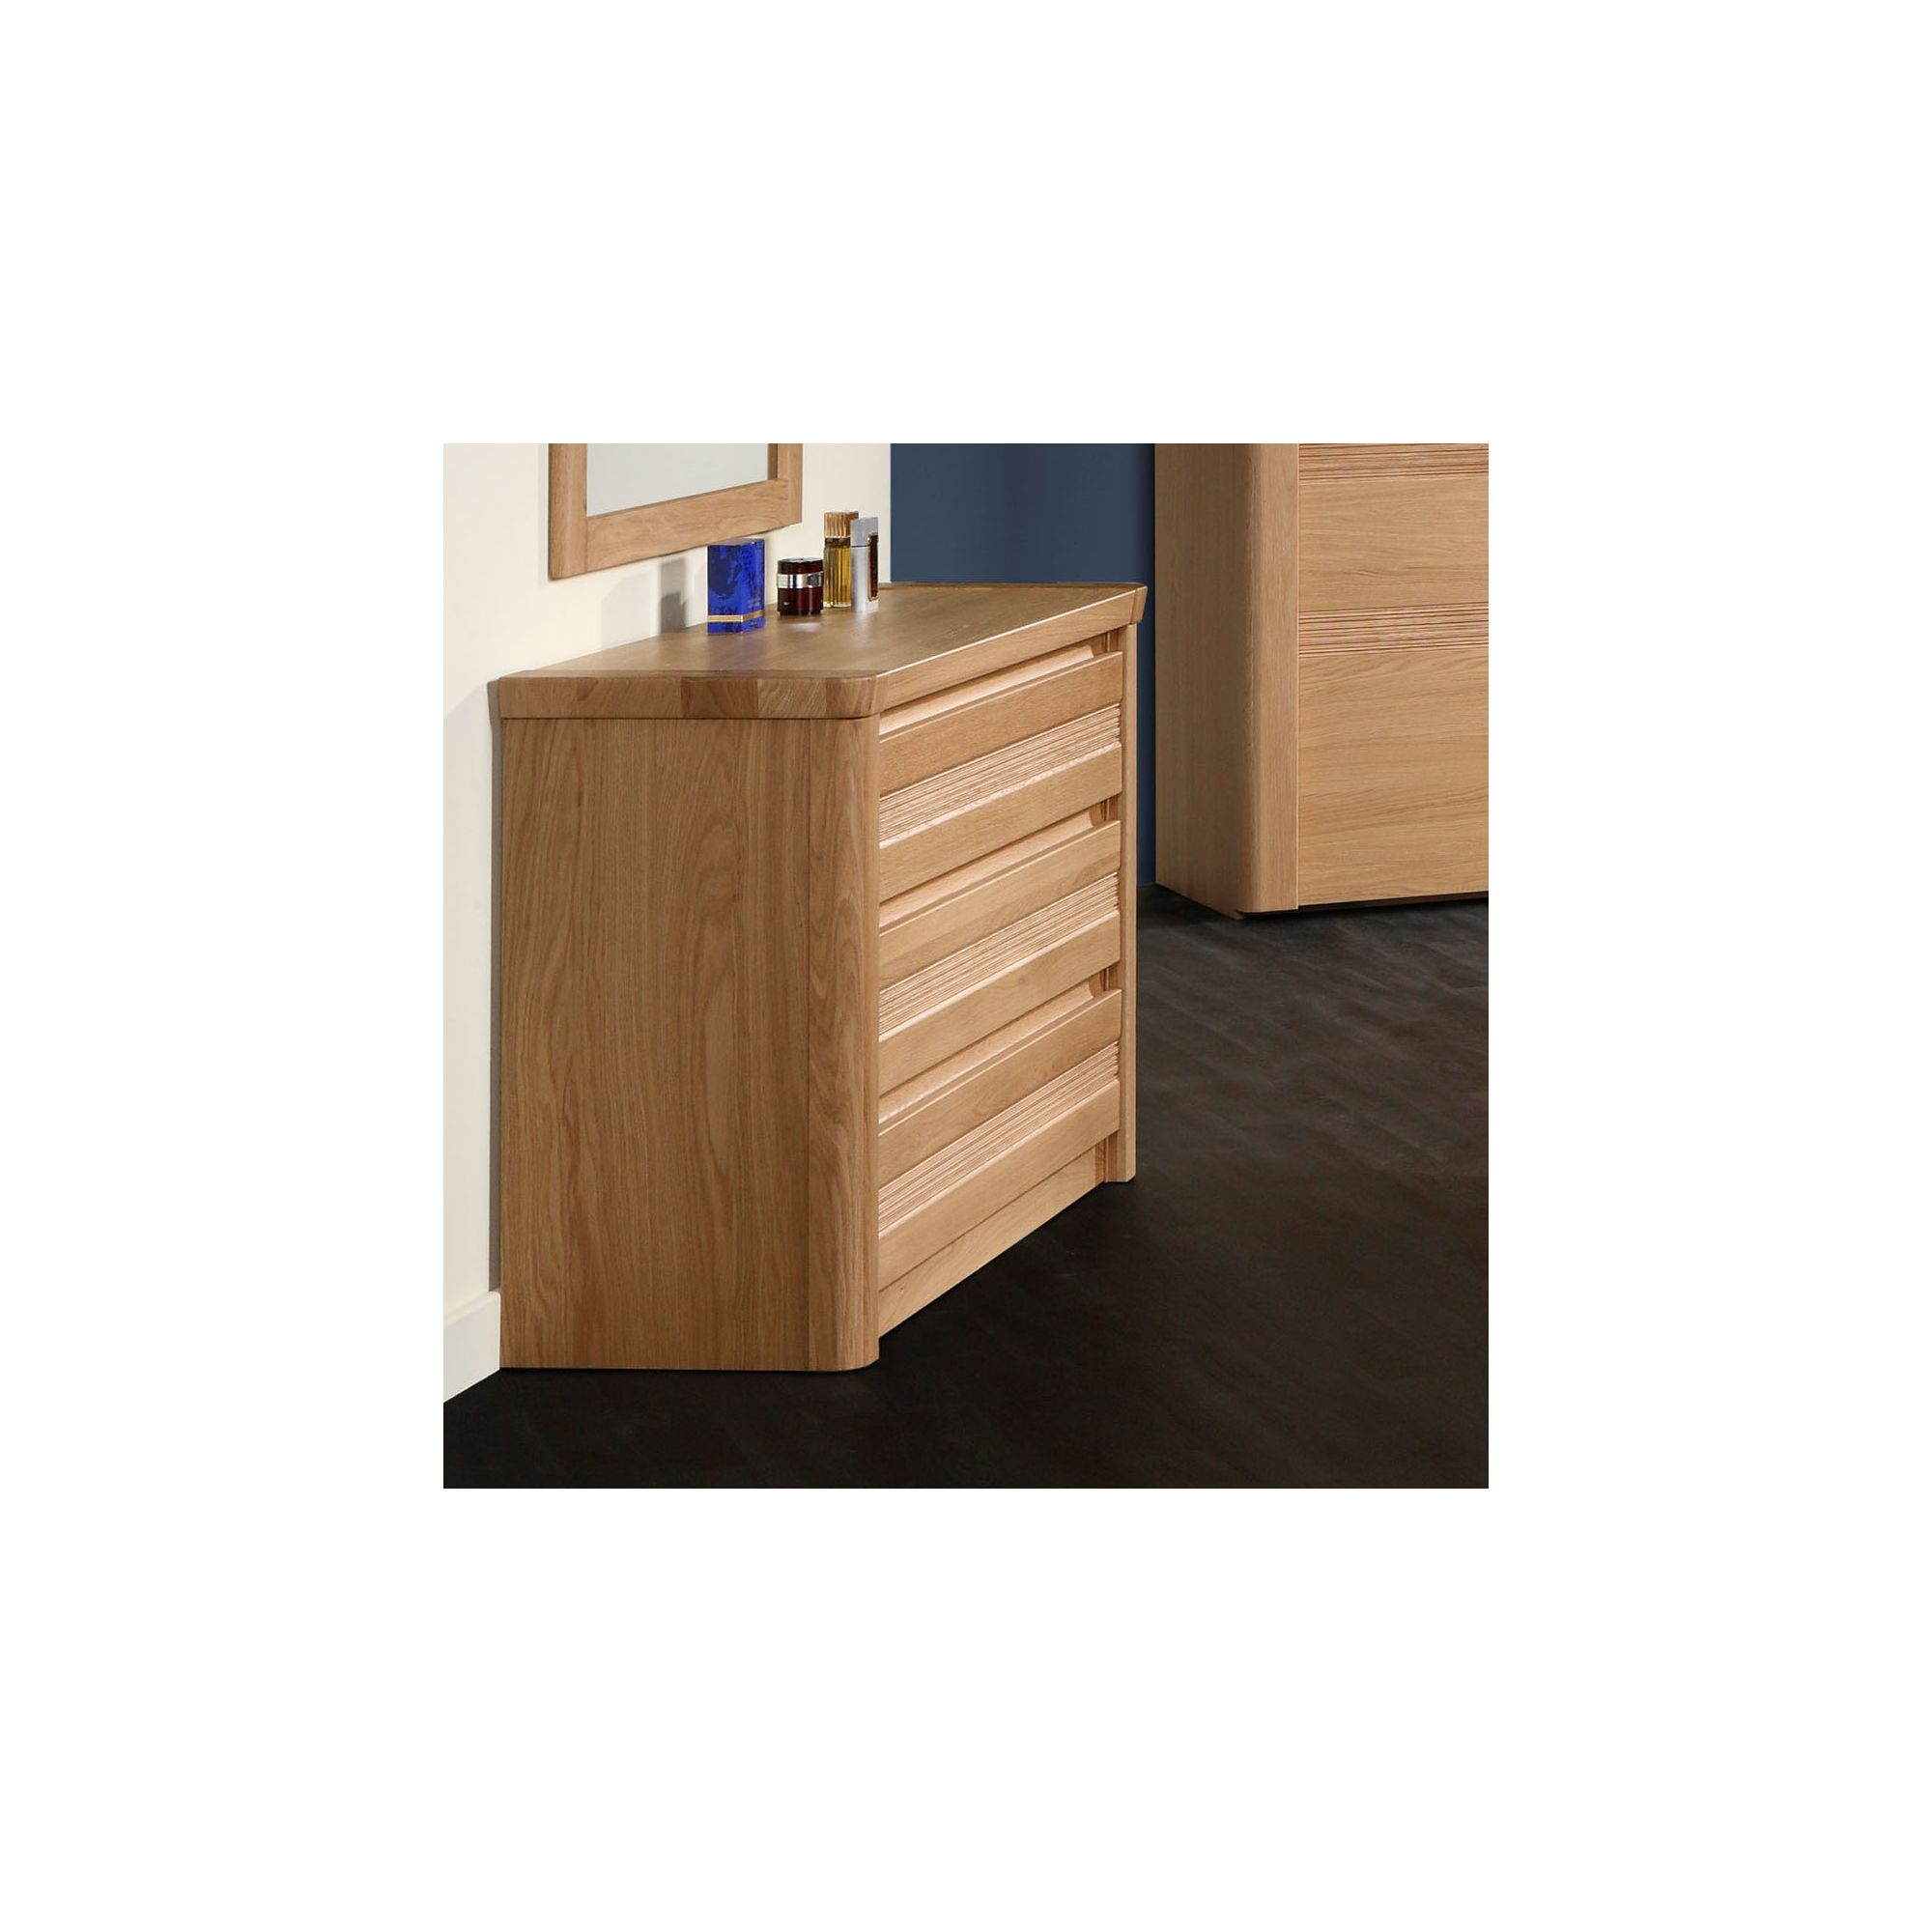 Sleepline Mundo Narrow 3 Drawer Chest - White Mat Lacquered at Tesco Direct